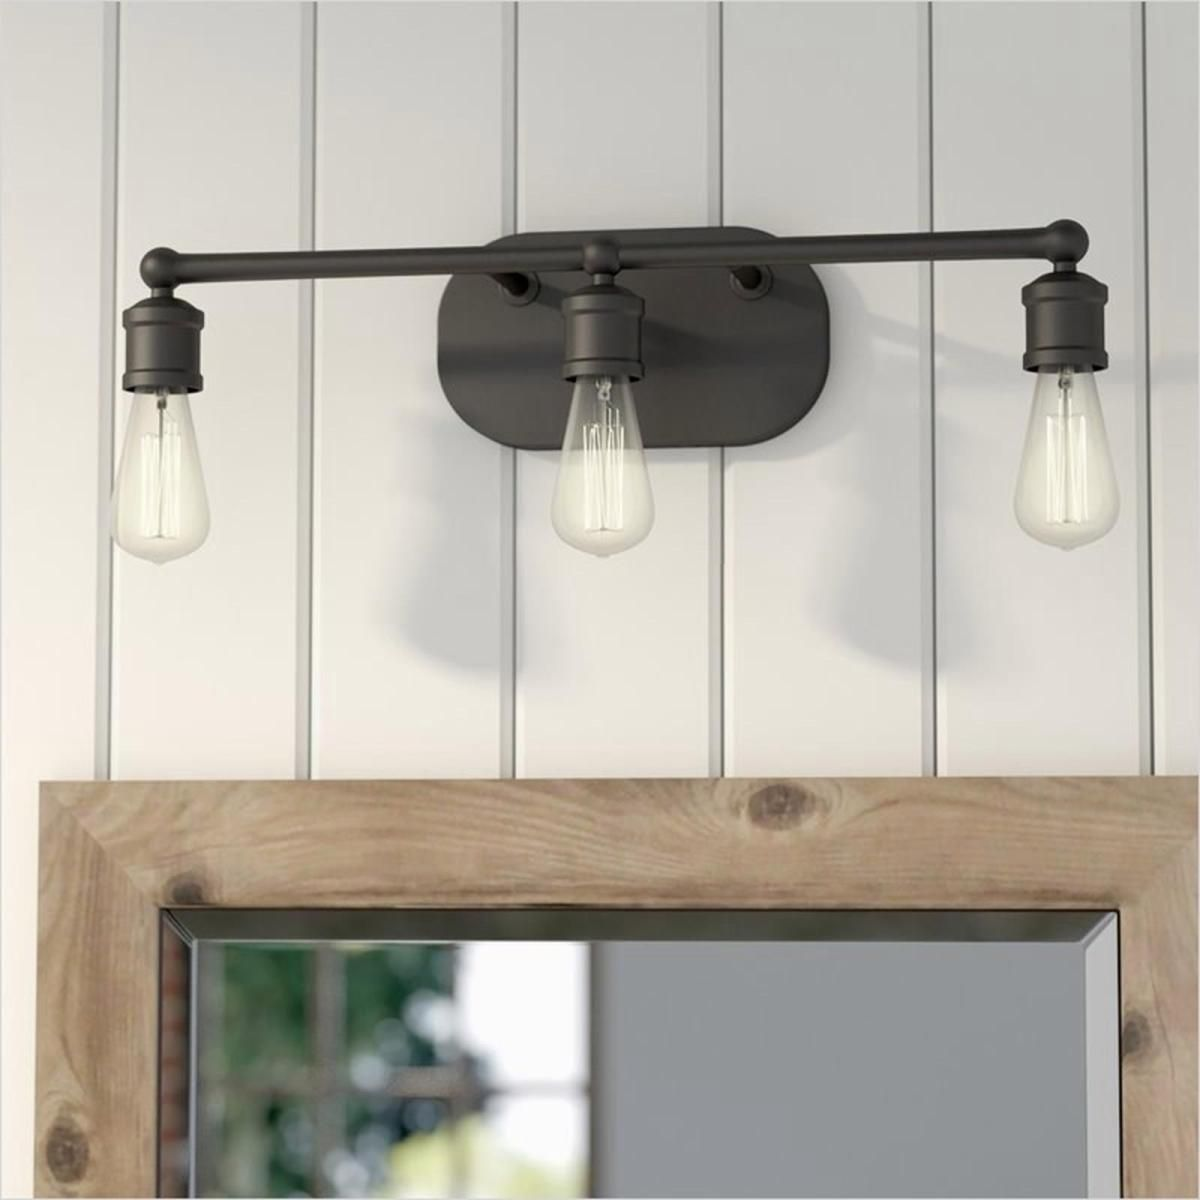 Photo of 26 Inexpensive Farmhouse Bathroom Lighting Ideas You Will Love 17 – HomeandCraft